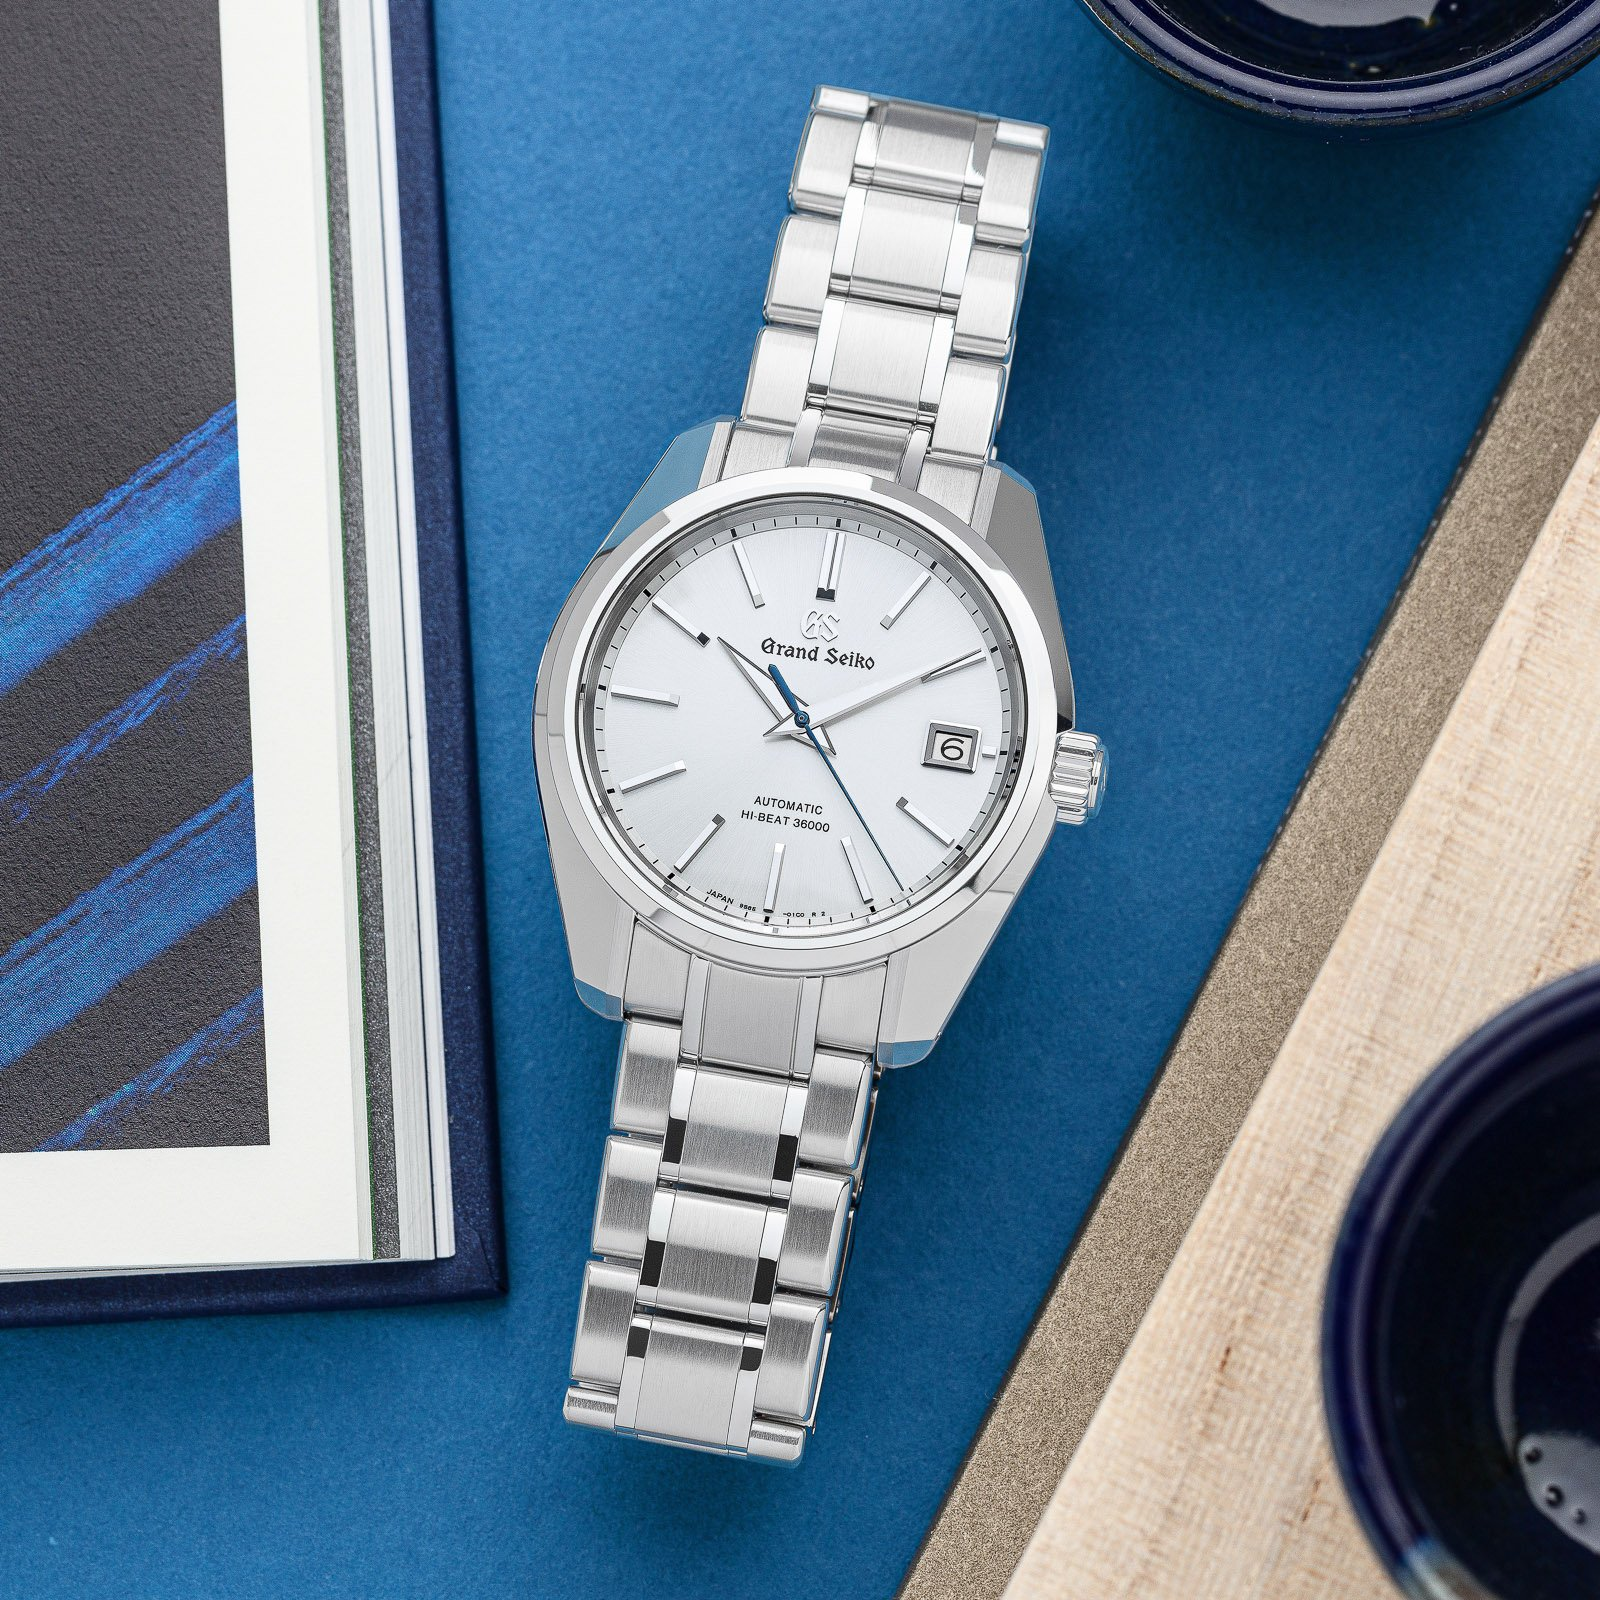 White dial stainless steel wristwatch atop a blue table.